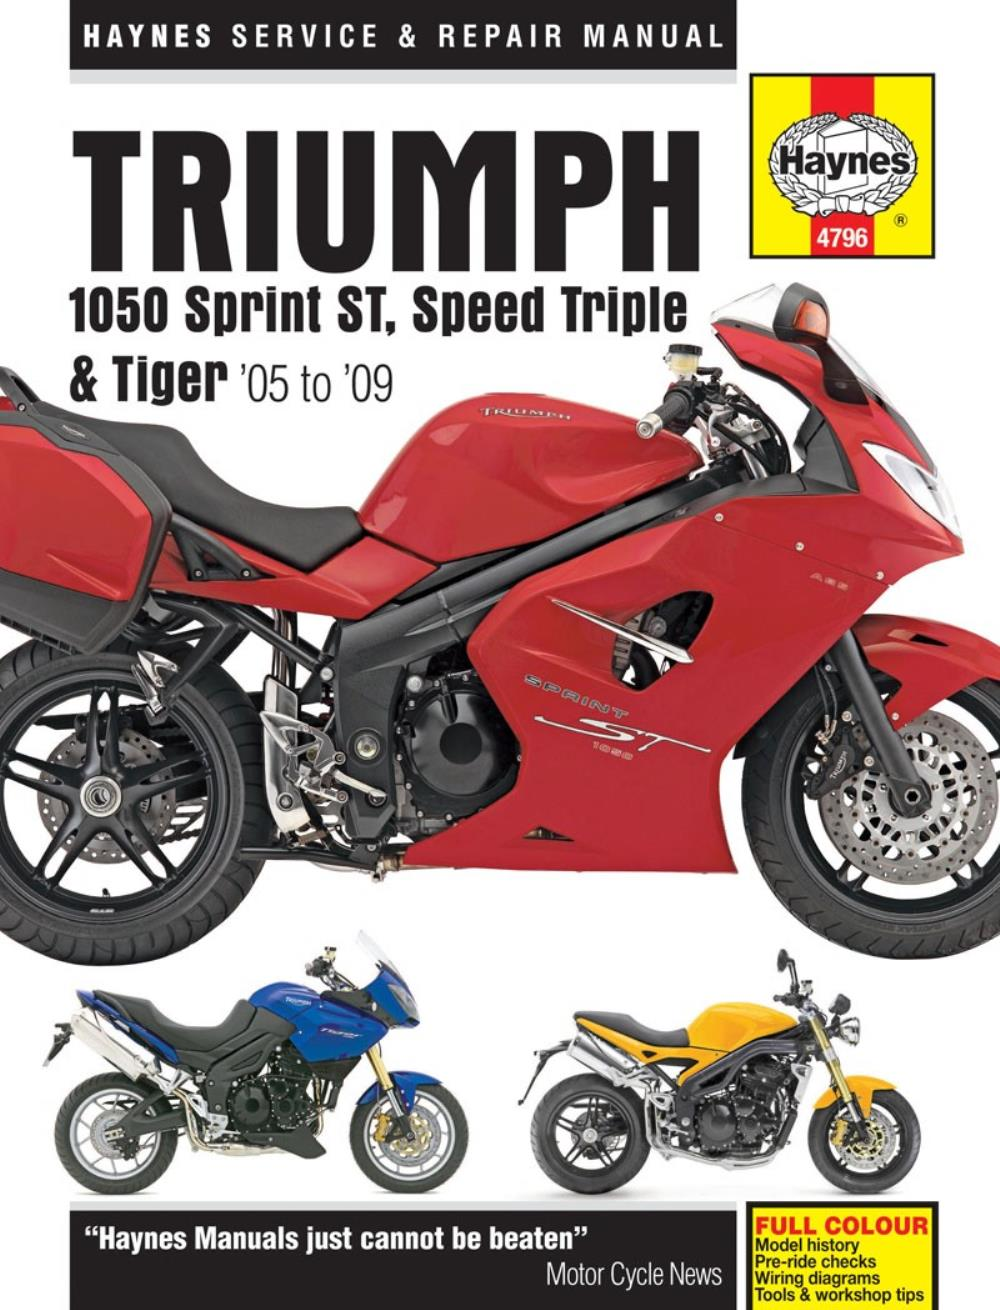 medium resolution of image is loading manual haynes for 2010 triumph speed triple 1050